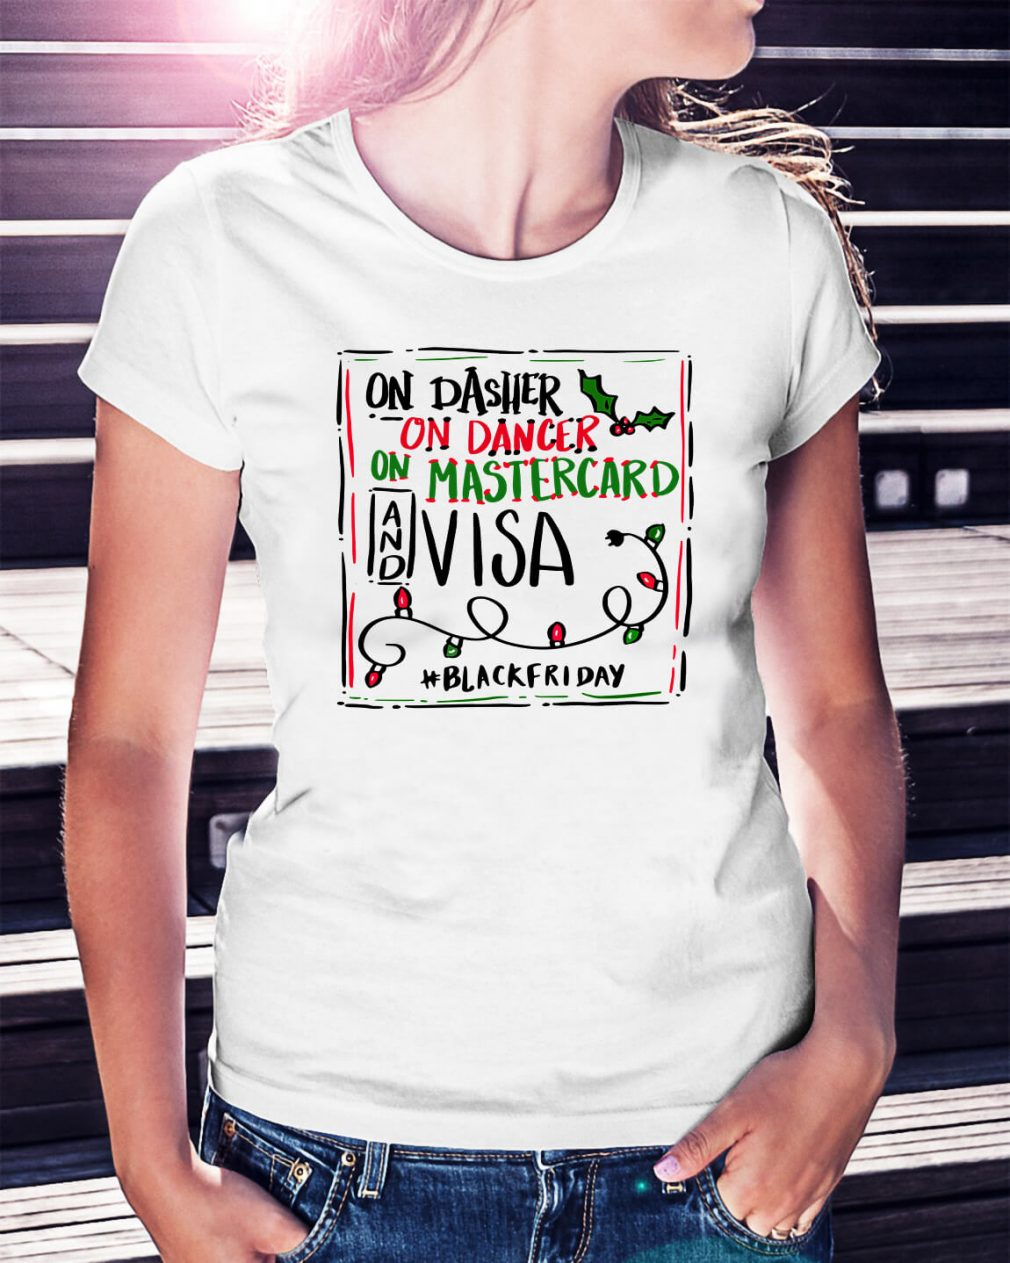 On Dasher on dancer on Mastercard and visa blackfriday Ladies Tee